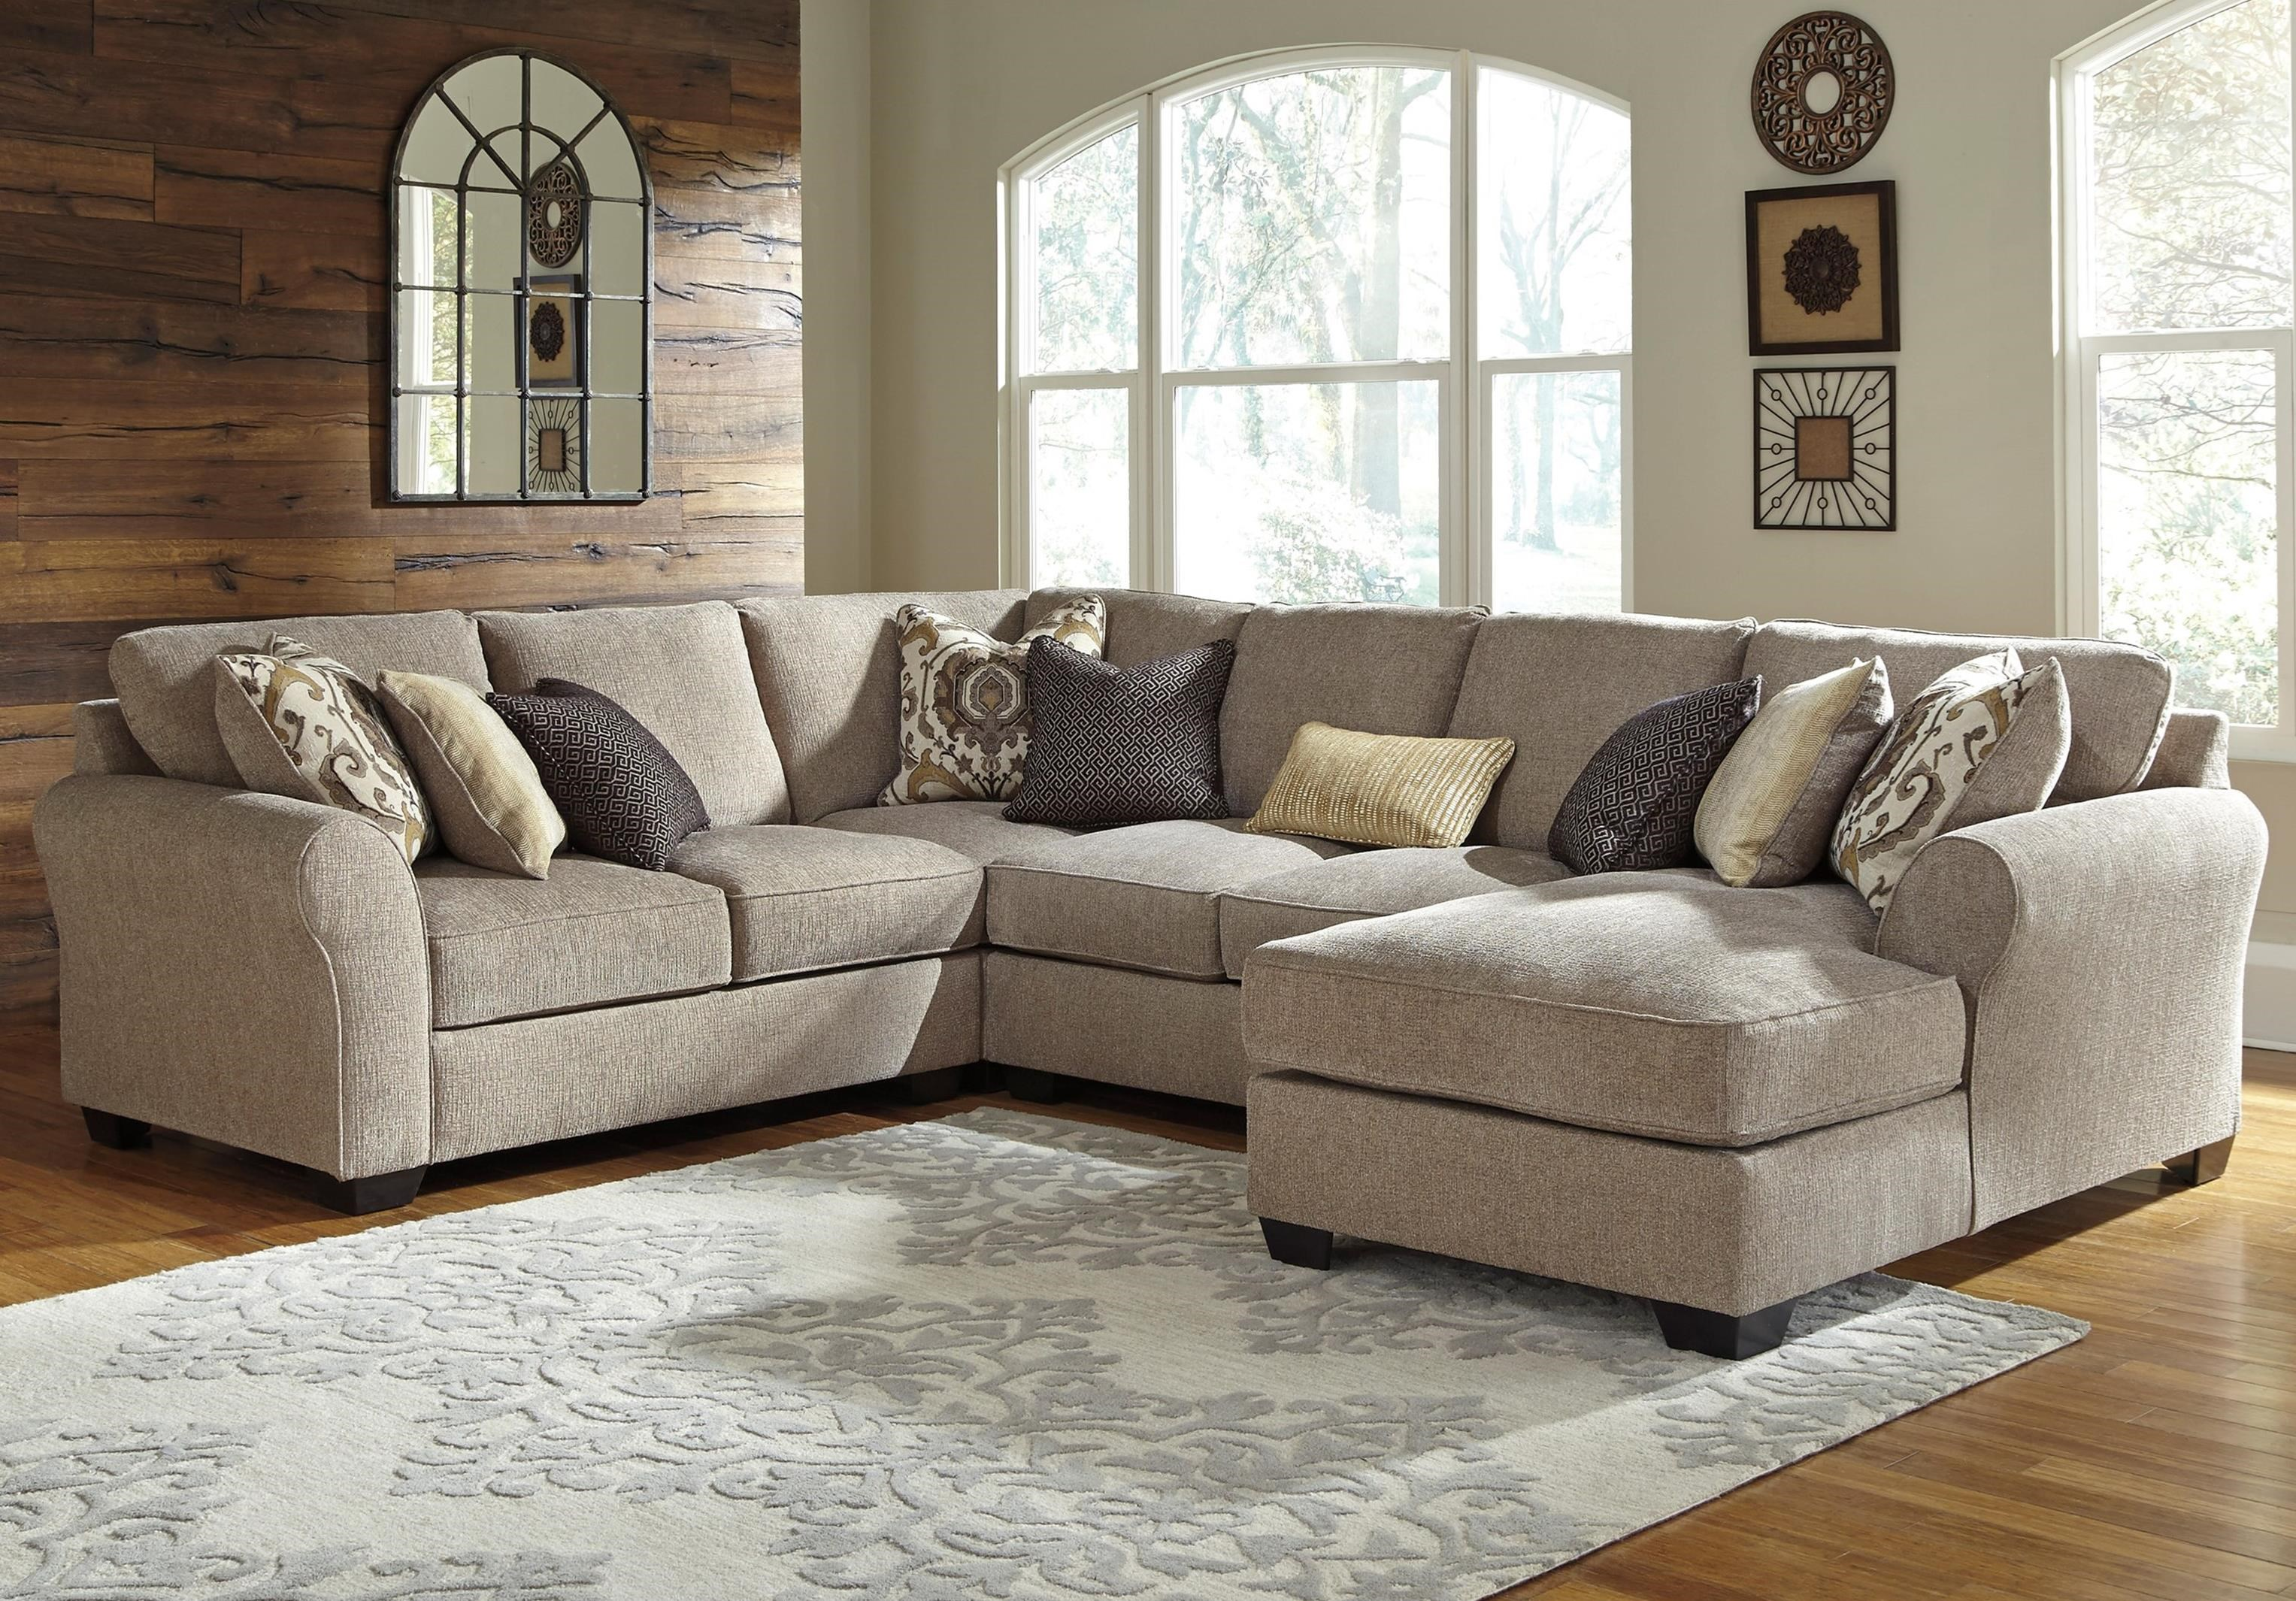 Benchcraft Pantomine 4 Piece Sectional with Right Chaise Value